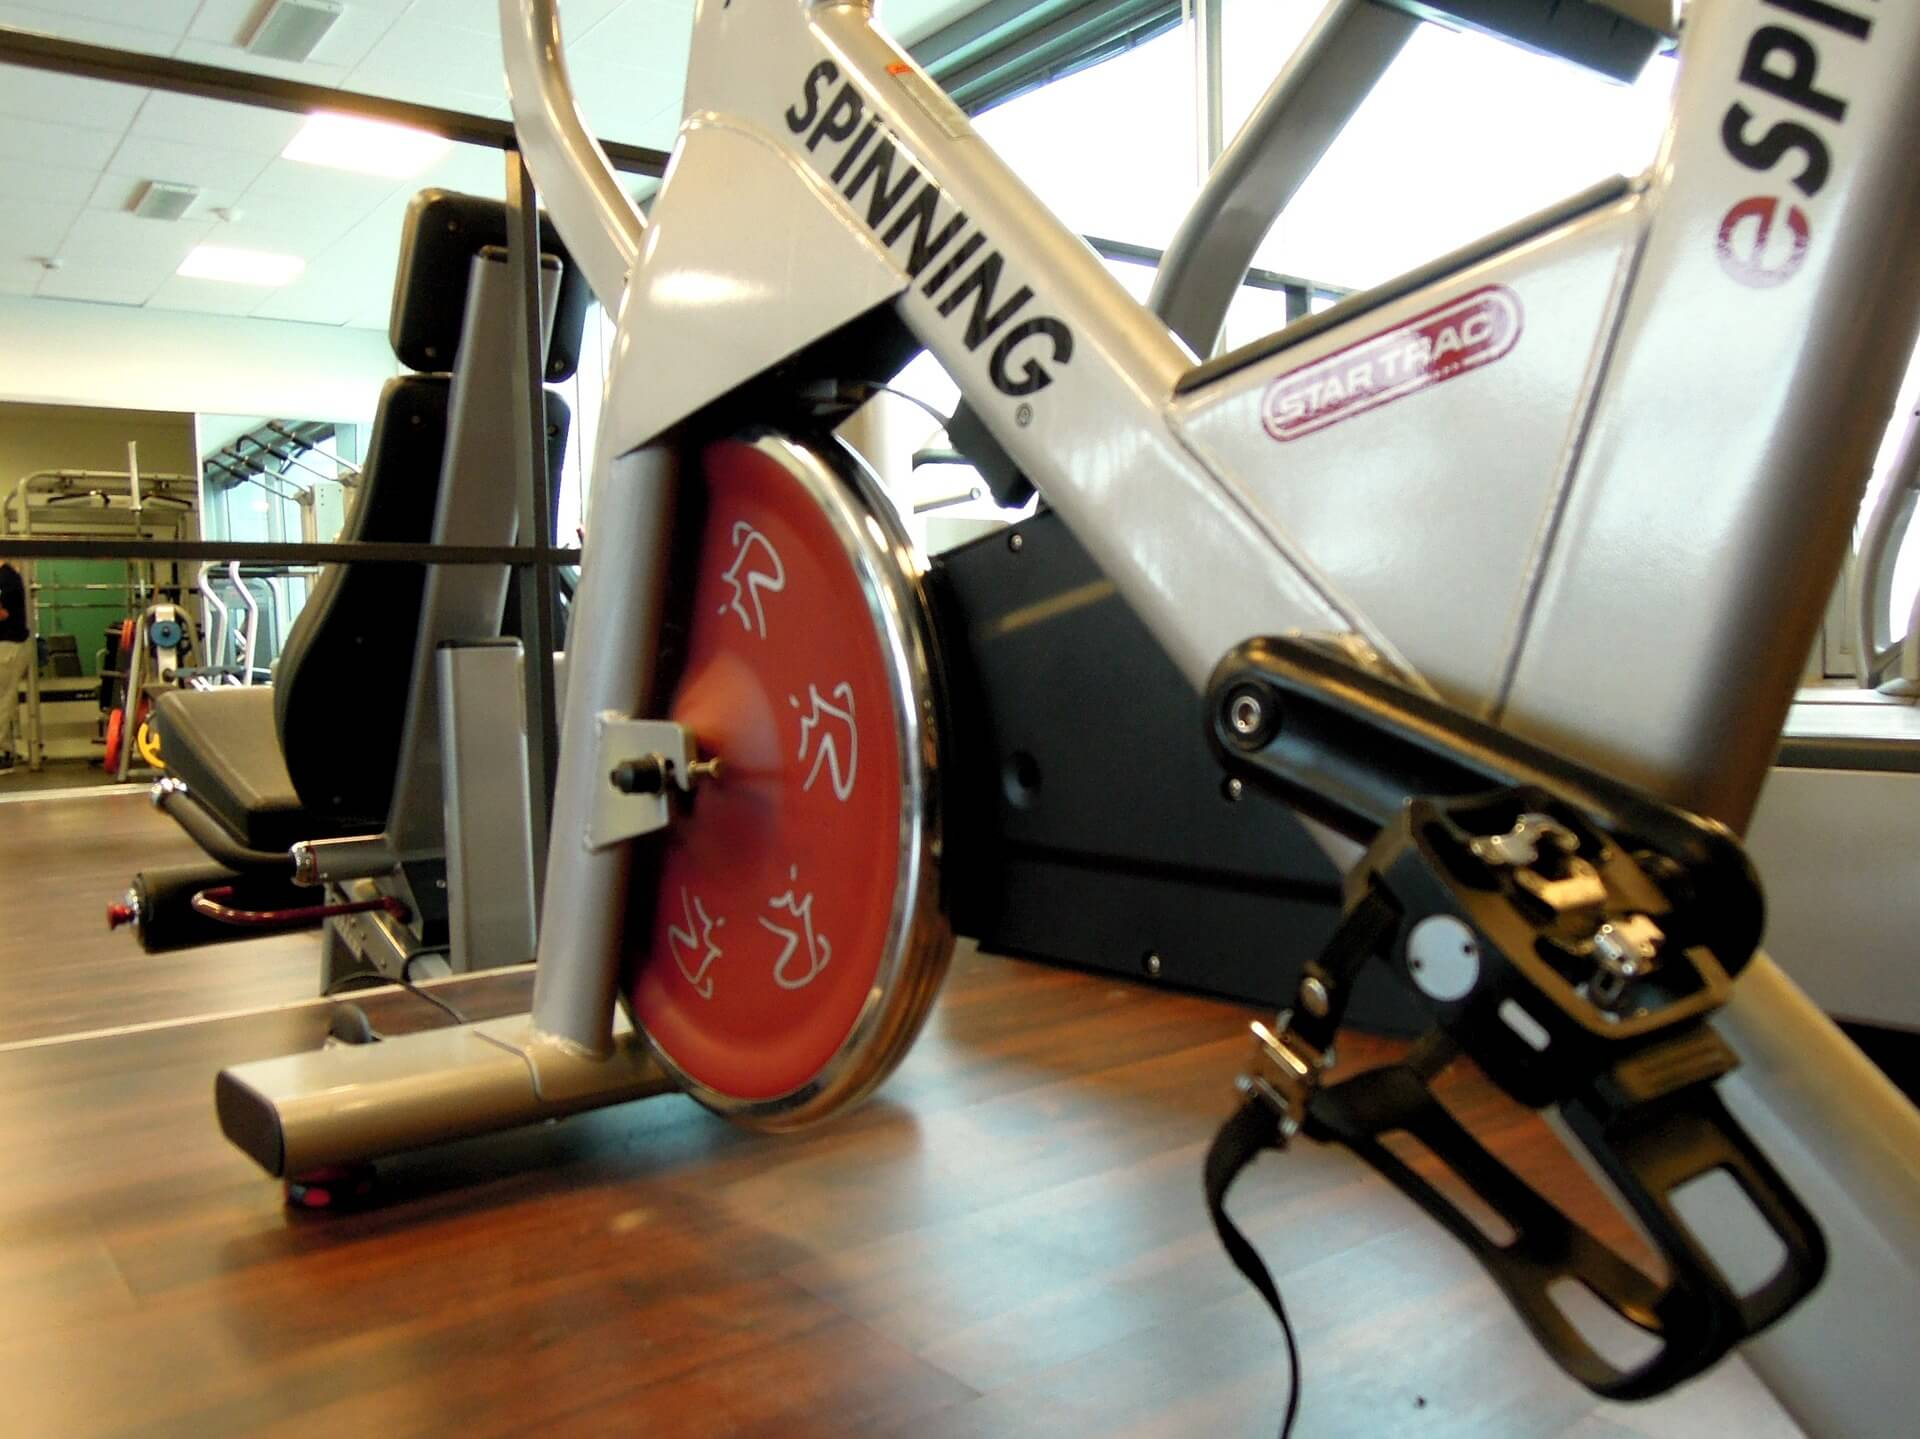 Indoor cycling is a great way for runners to cross train